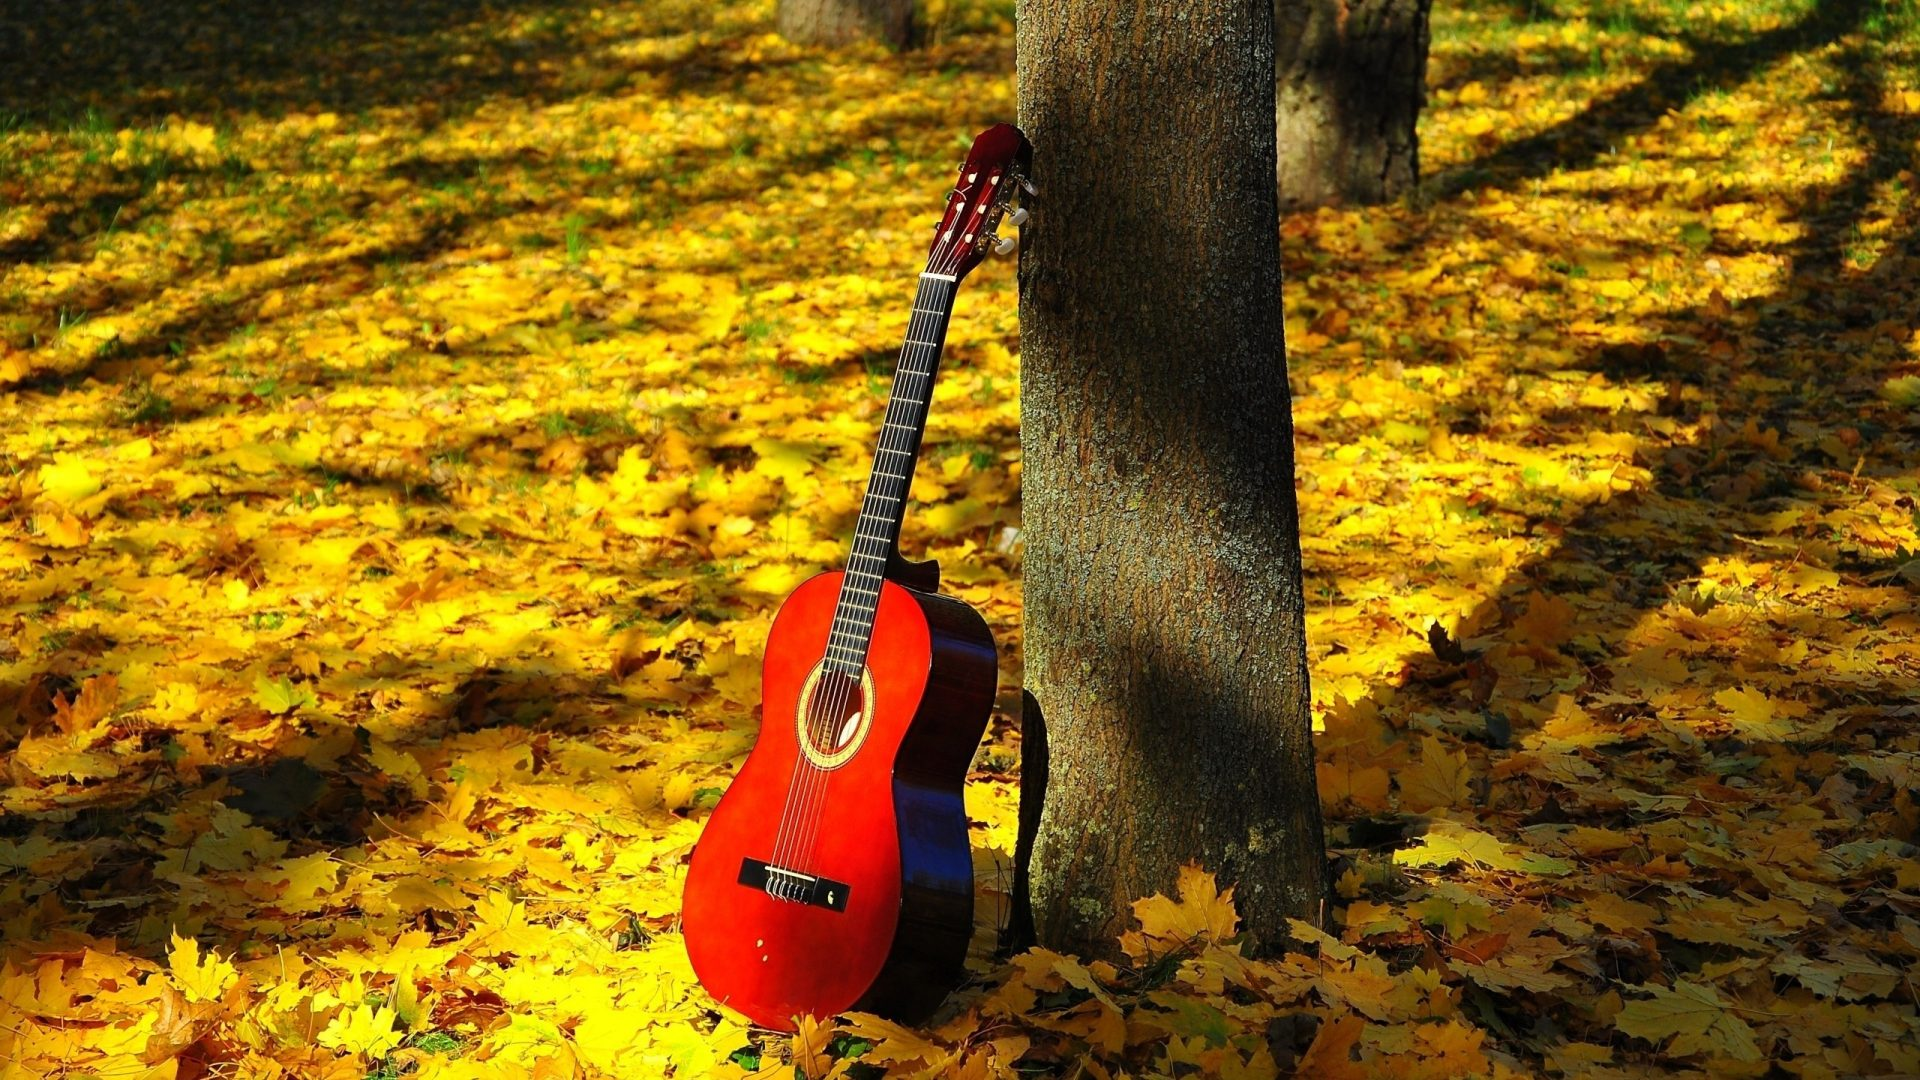 forests-leaves-autumn-music-nature-guitar-forest-wallpaper-hd-free-download-1920x1080.jpg